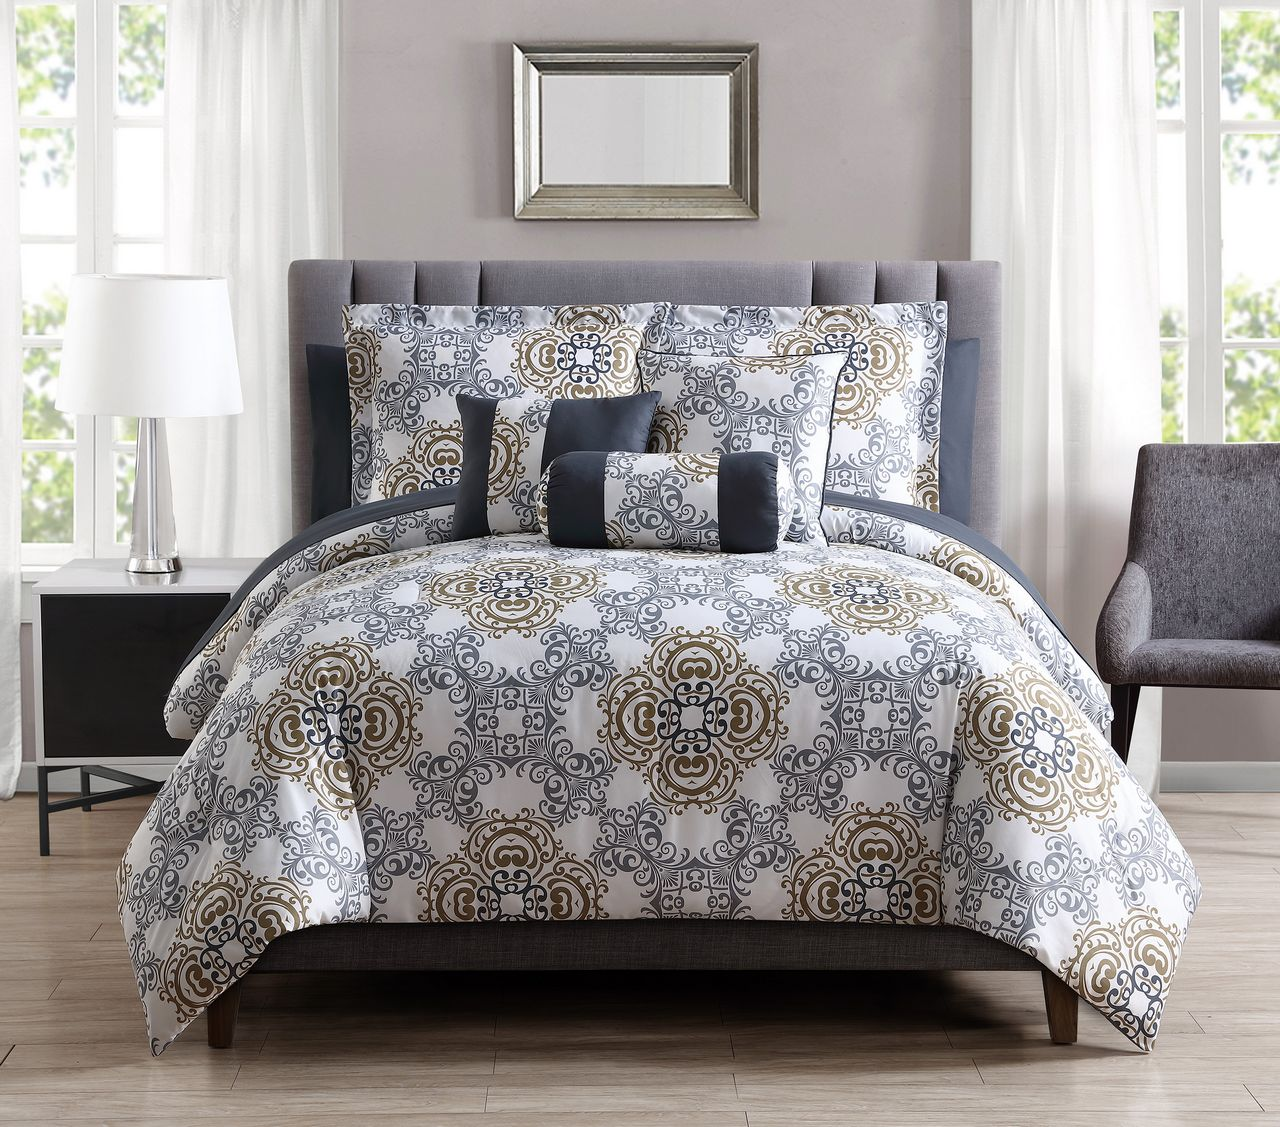 White And Gold Bedroom Set : 10 Piece Olena Gray/Gold/White Comforter Set w/Sheets Queen